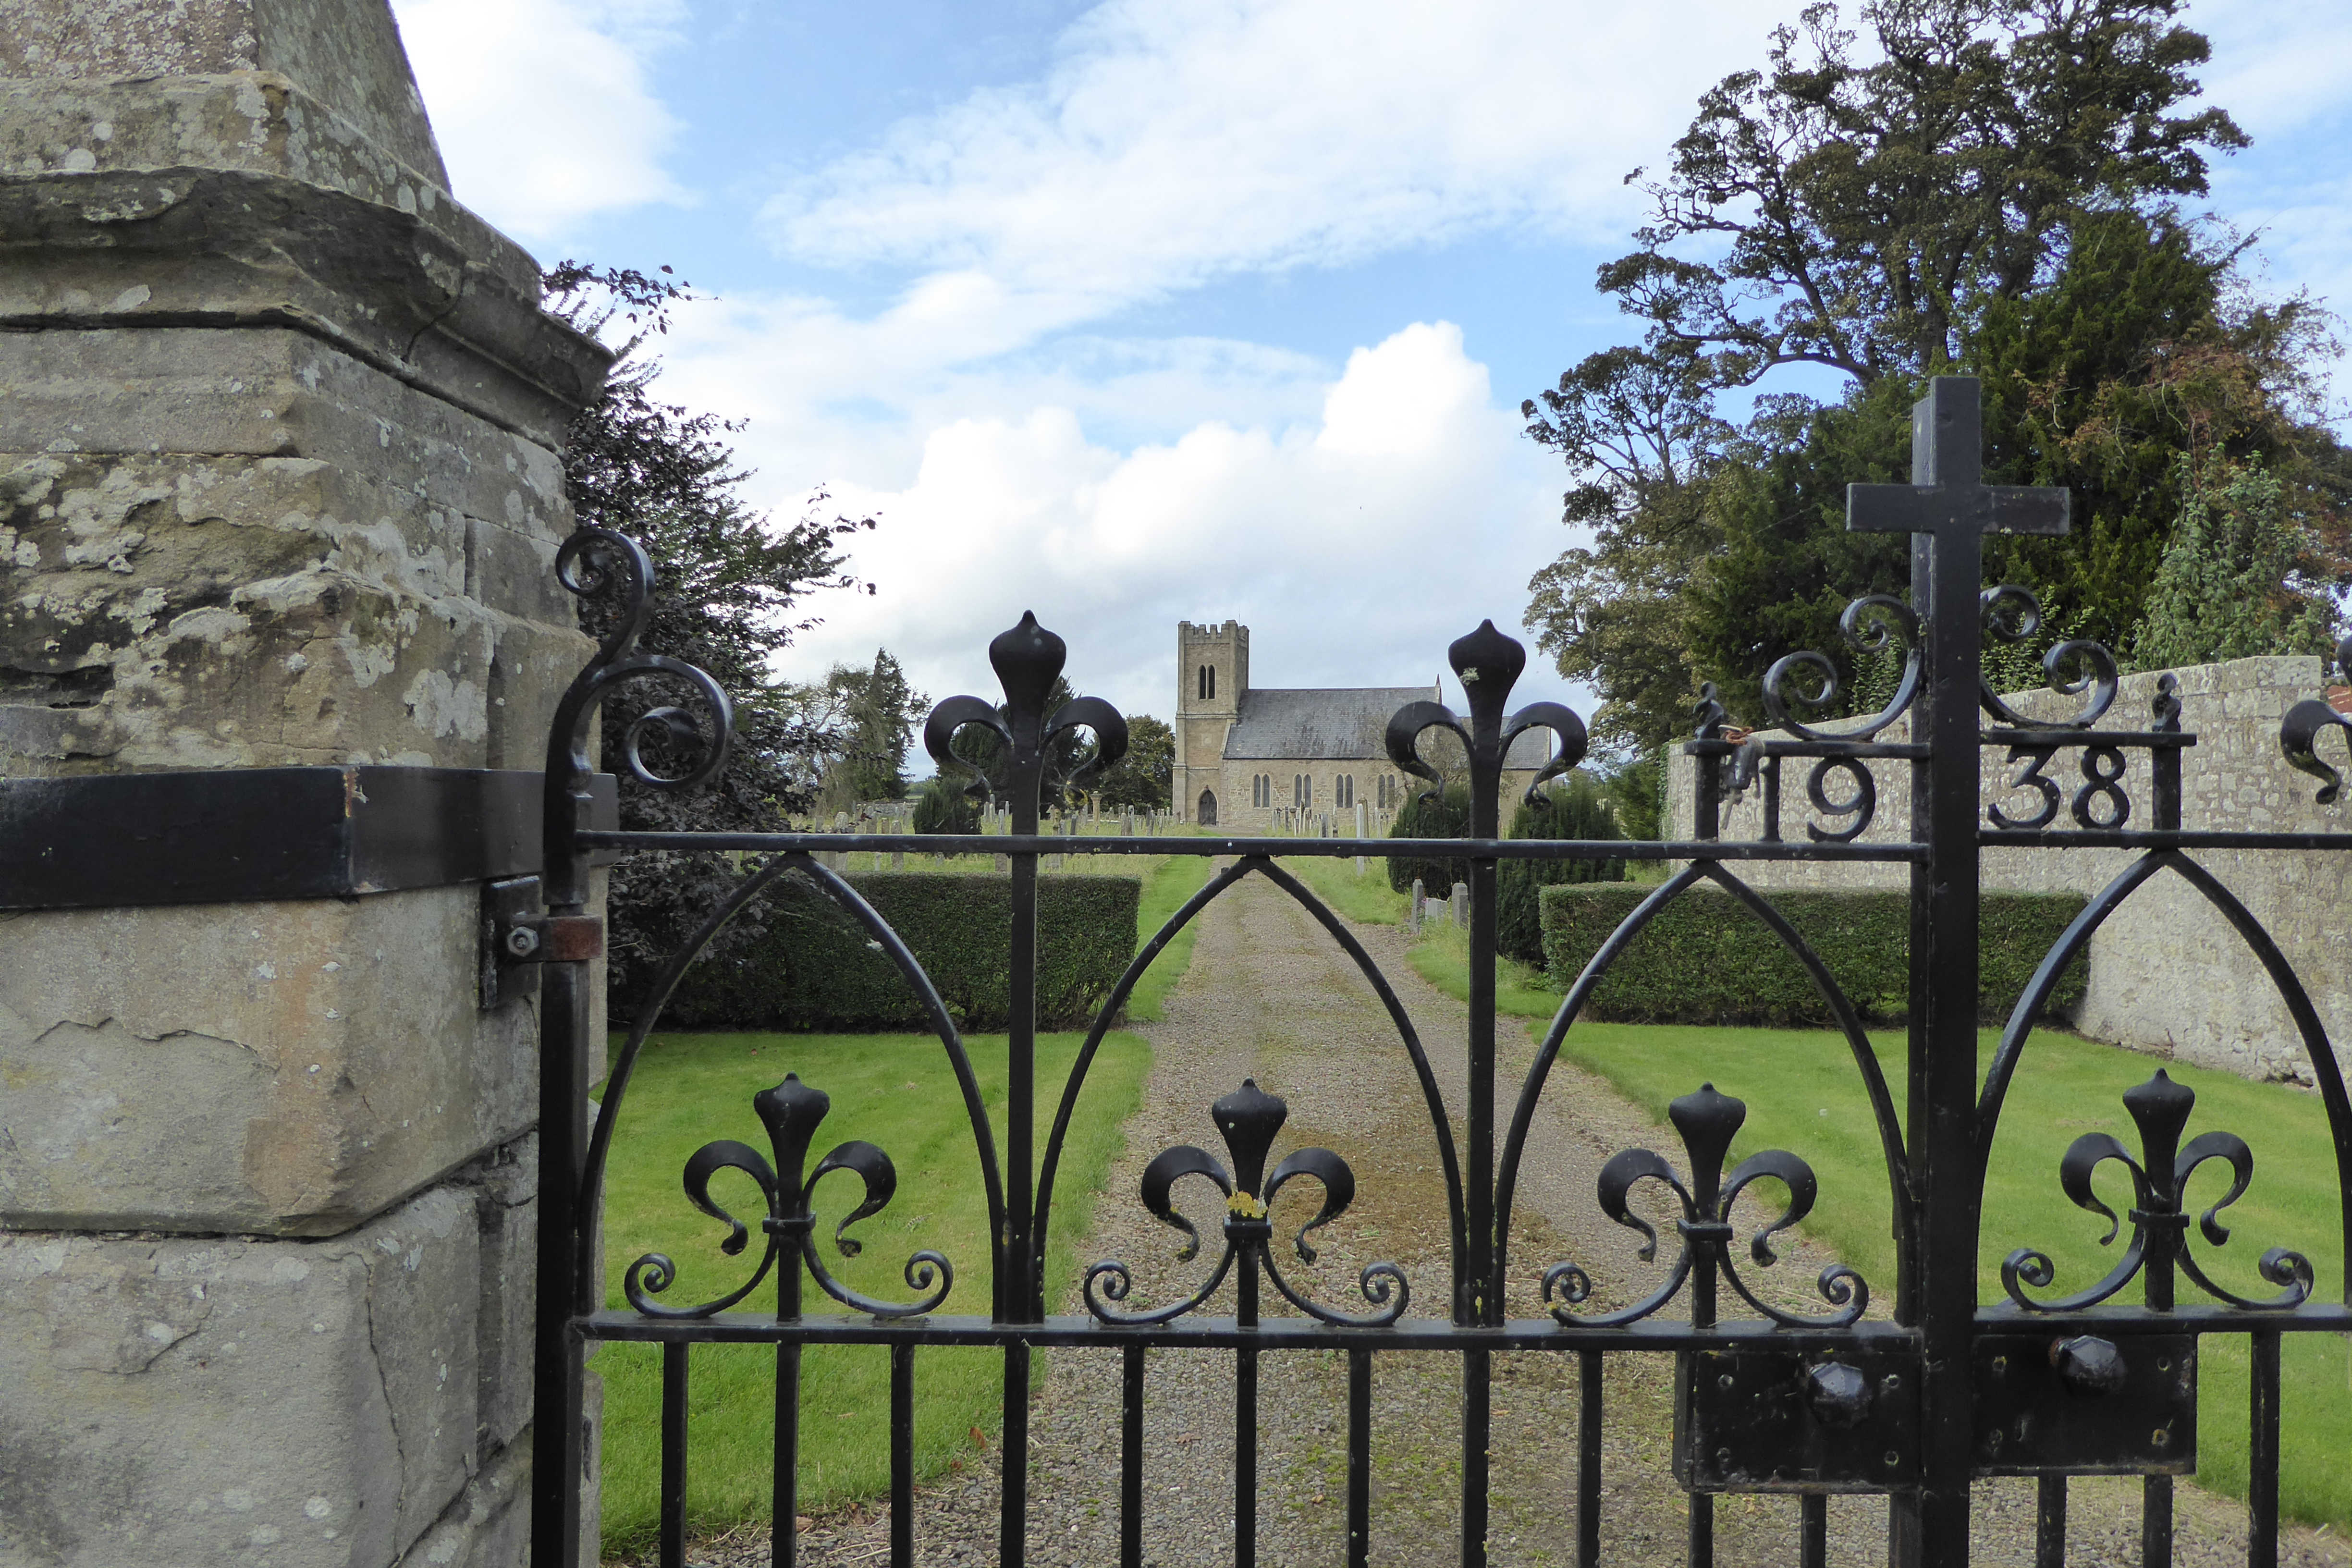 The Church of St Cuthbert and its wrought iron gates, which bear the date 1938